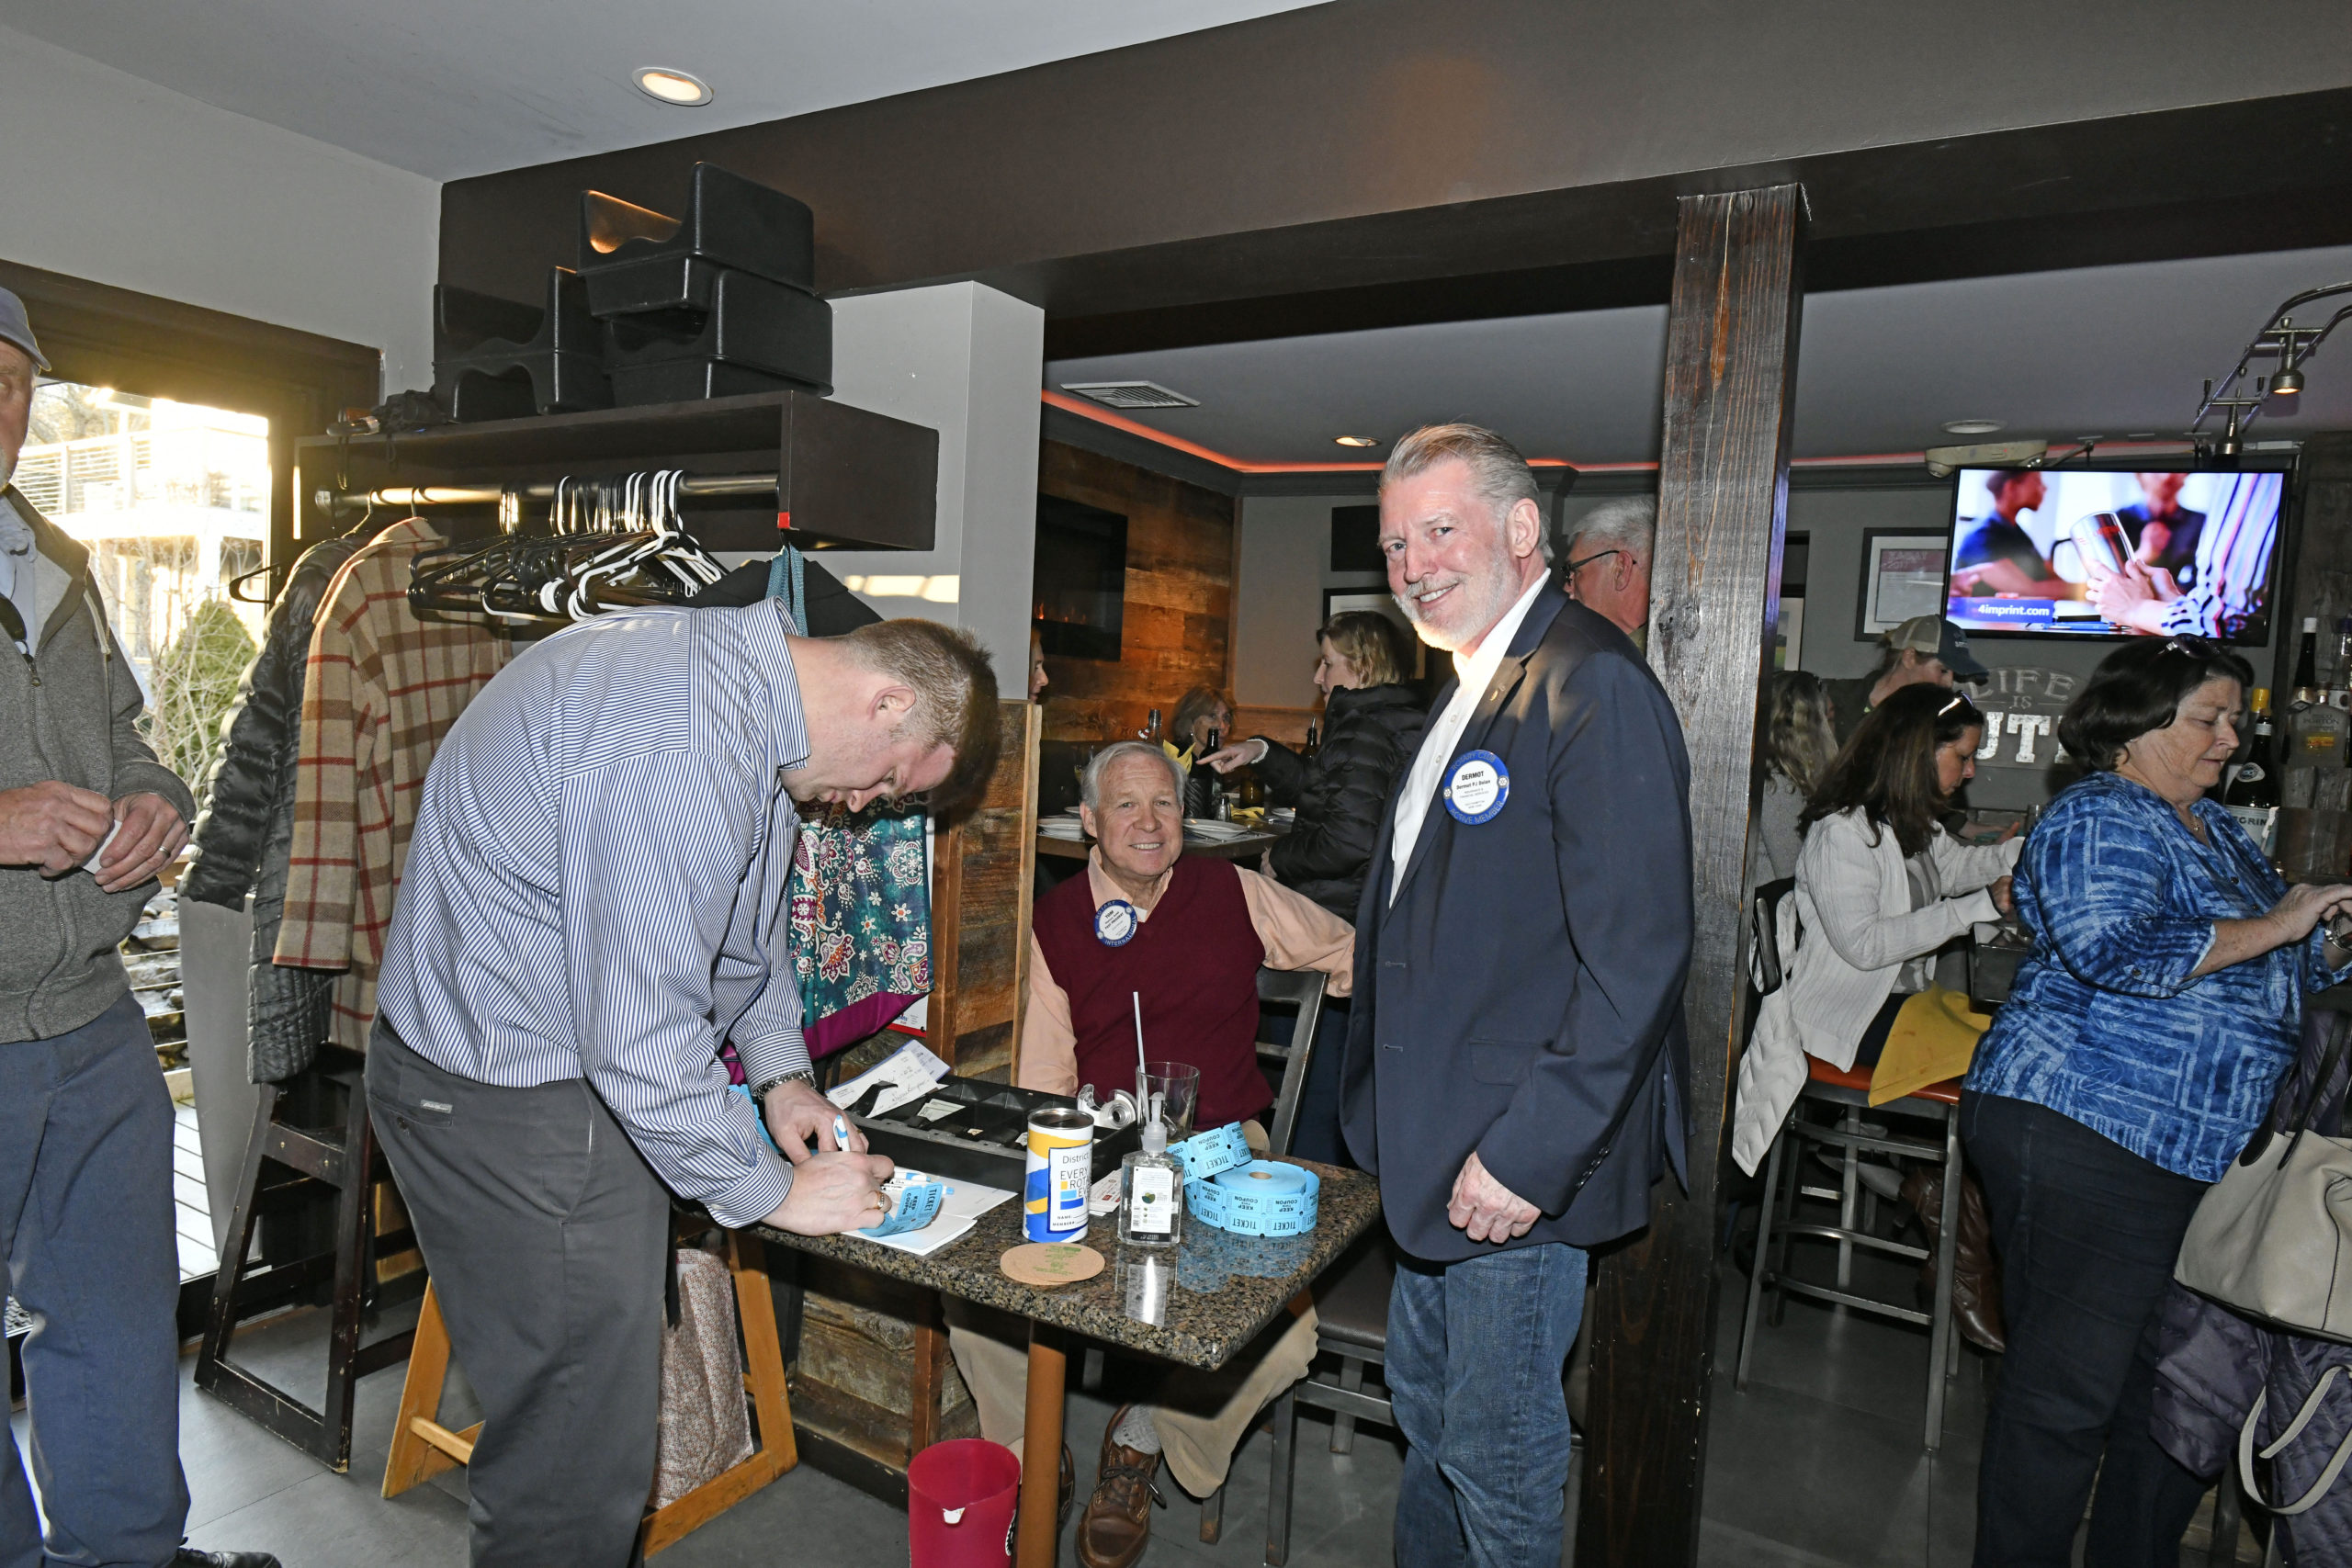 Southampton Rotarians Tom Guldi and Dermot Dolan welcome patrons to the the annual Southampton Rotary Club spaghetti dinner on Monday evening at the Edgewater Restaurant in Hampton Bays.  DANA SHAW